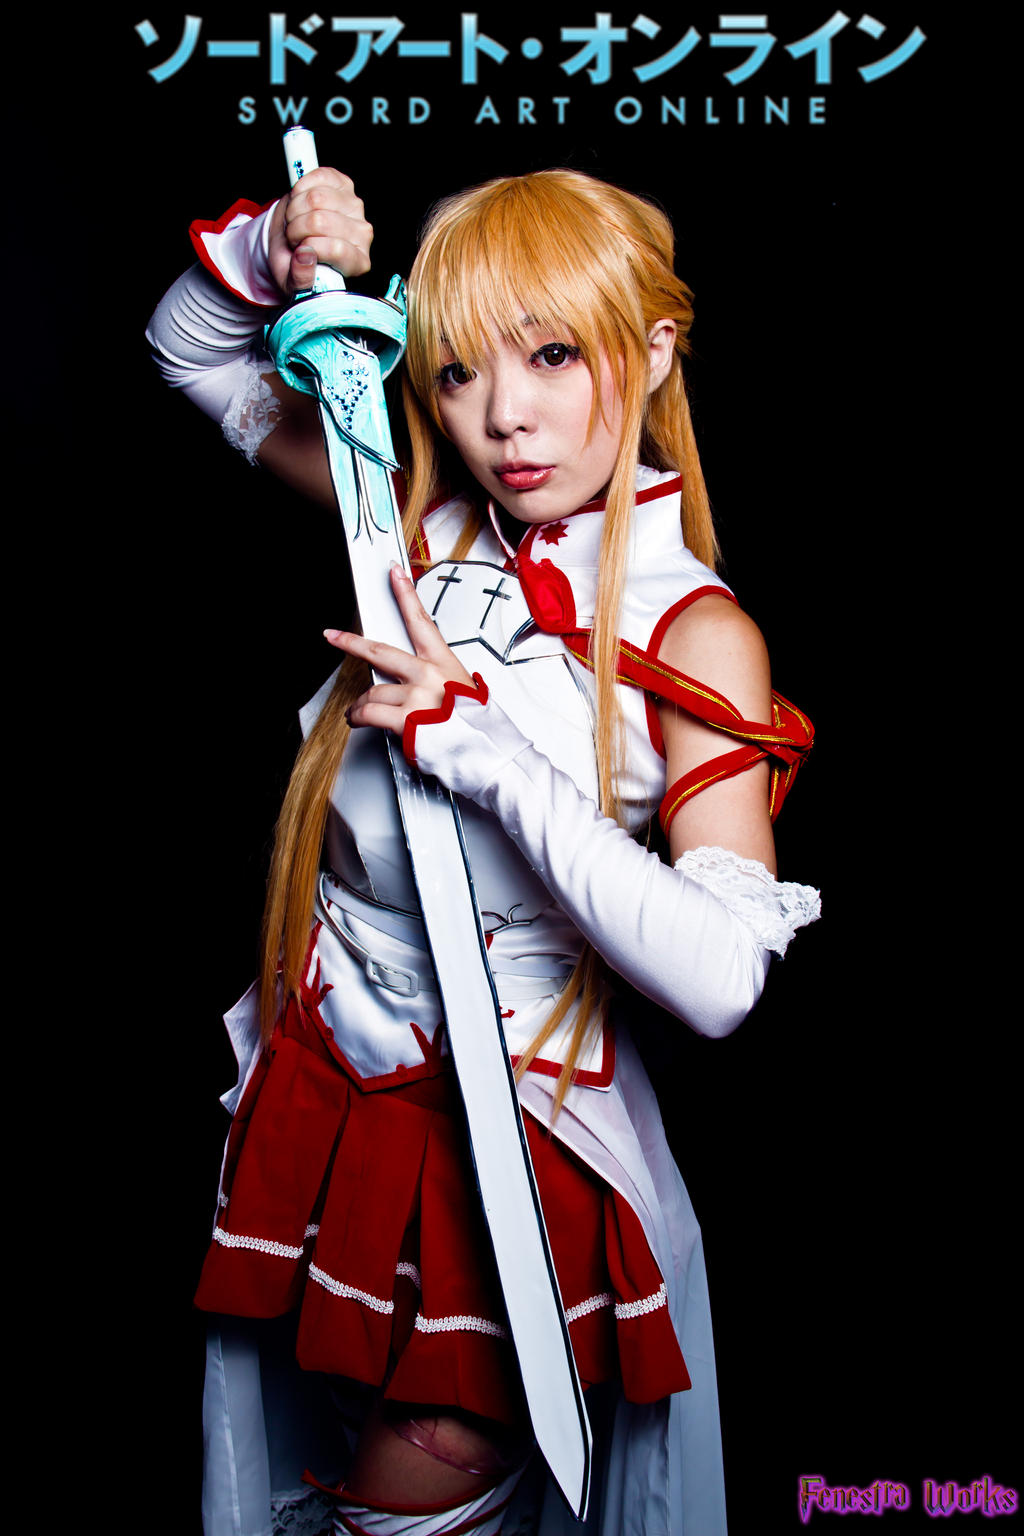 Sword Art Online by Fenestra-Works